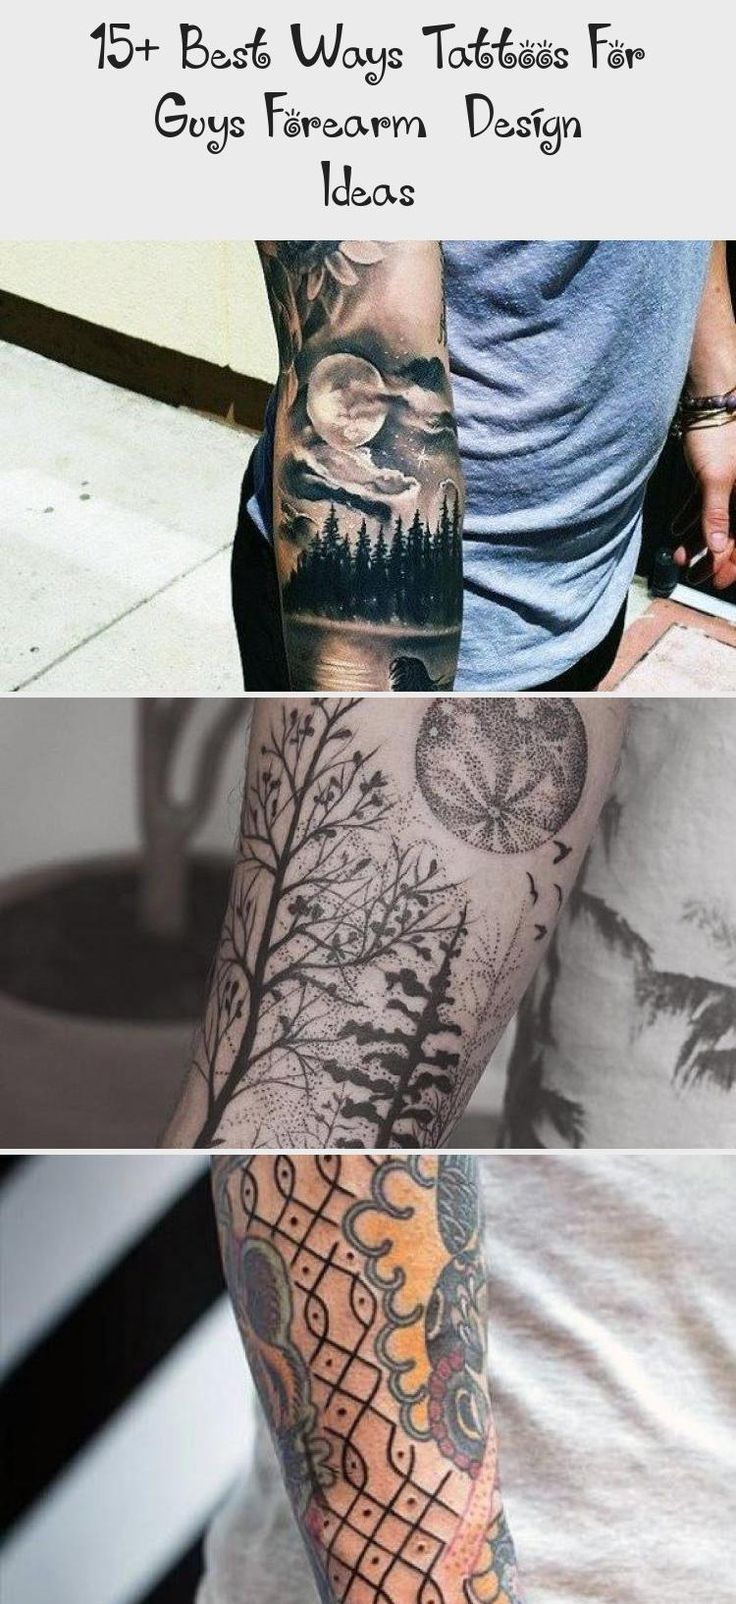 15+ Best Ways Tattoos For Guys Forearm Design Ideas